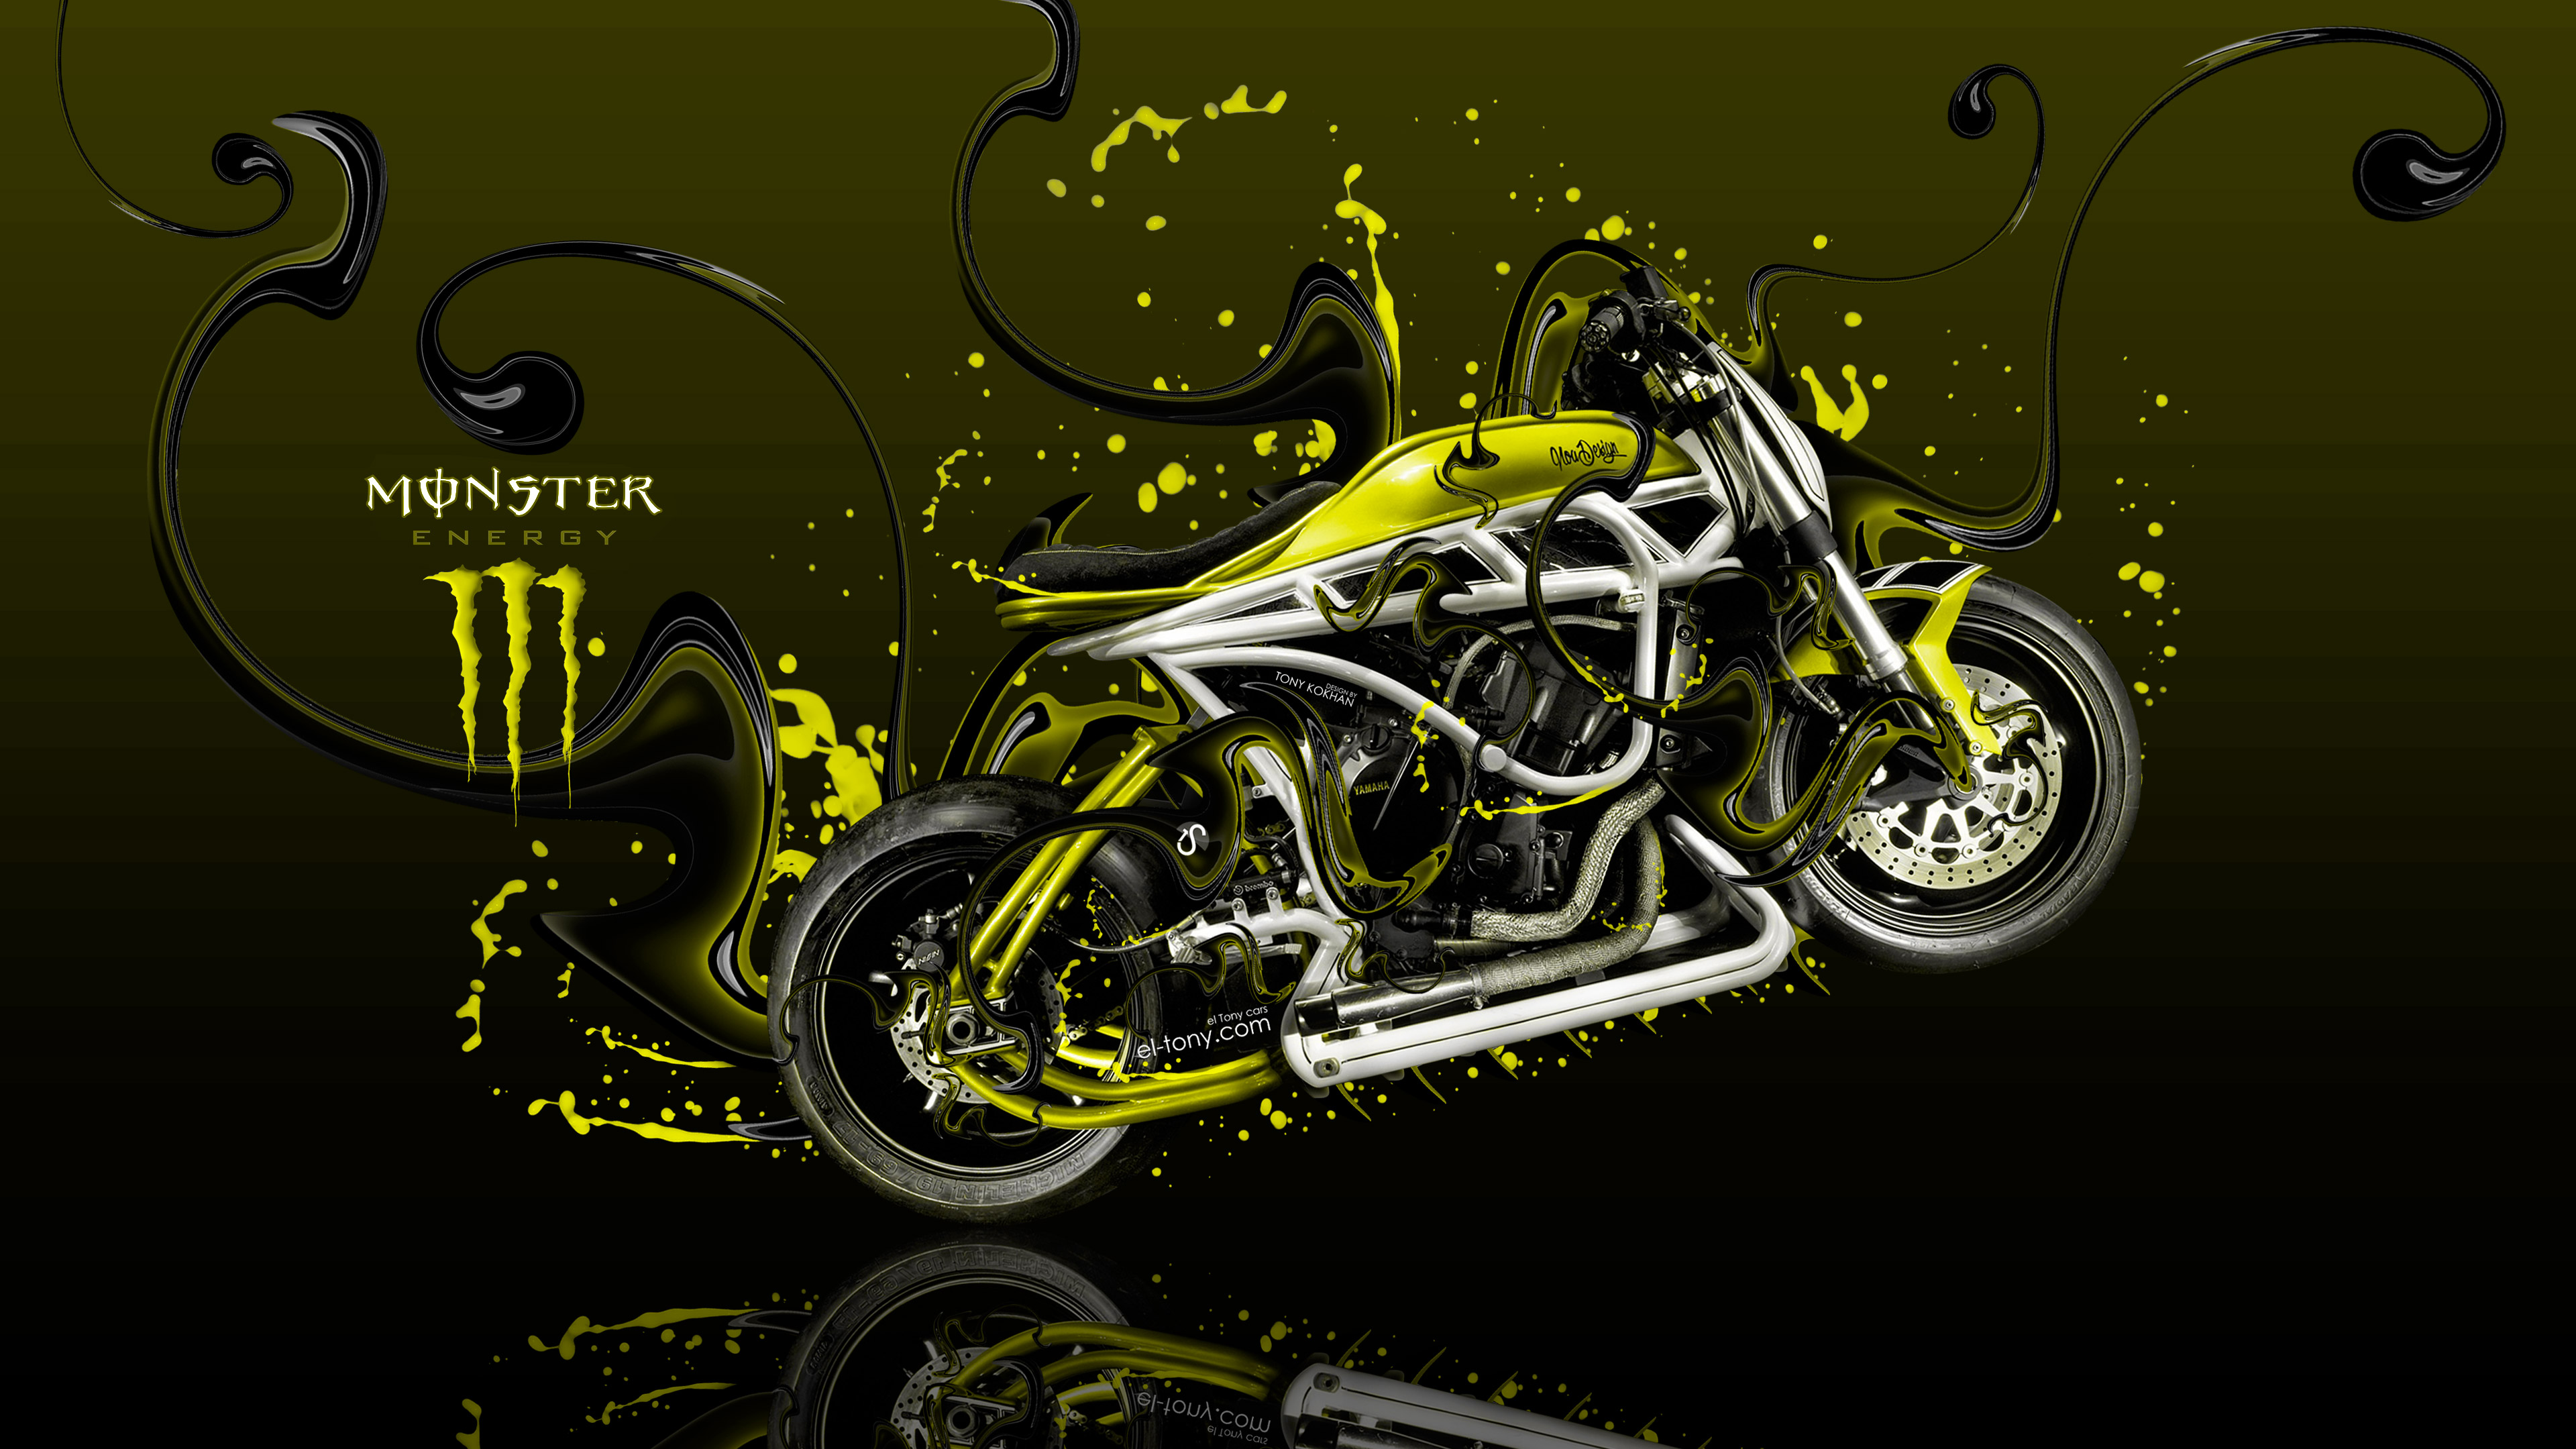 3d Mustang Wallpaper Monster Energy Moto Yamaha Side Super Plastic Acid Bike